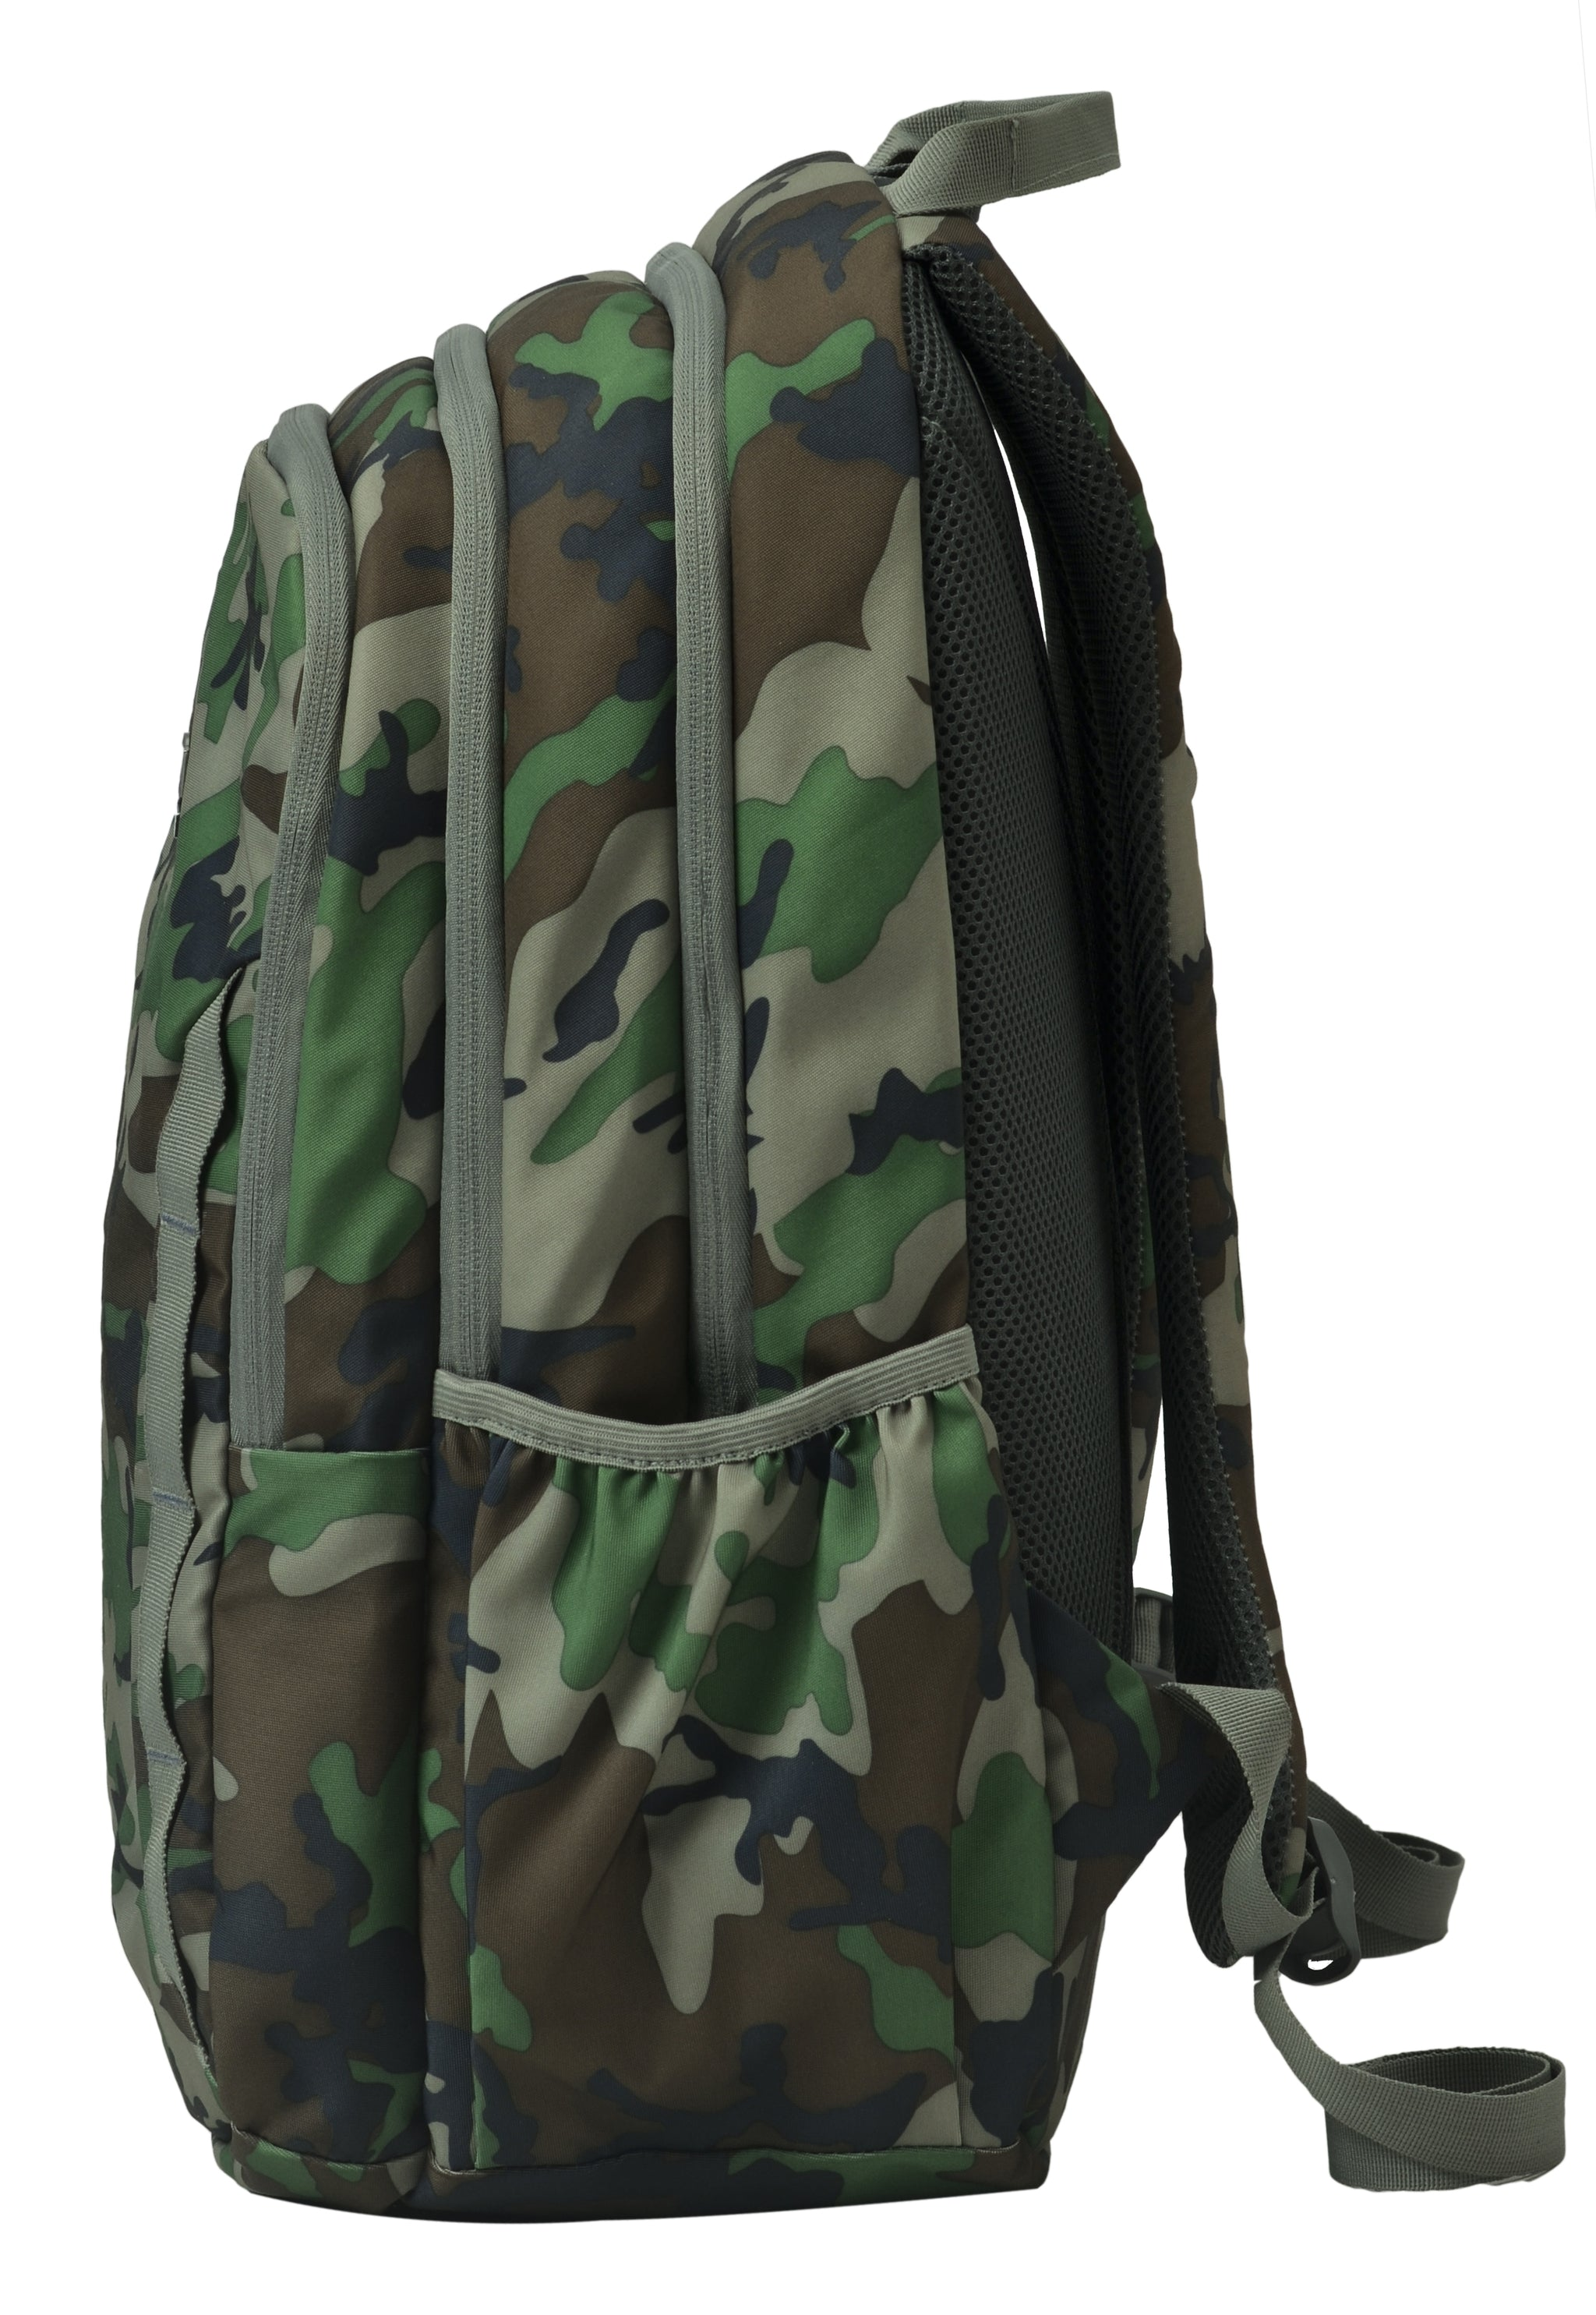 F Gear Military Raider 30 Liter Backpack with Rain Cover (Woodland A Camo)